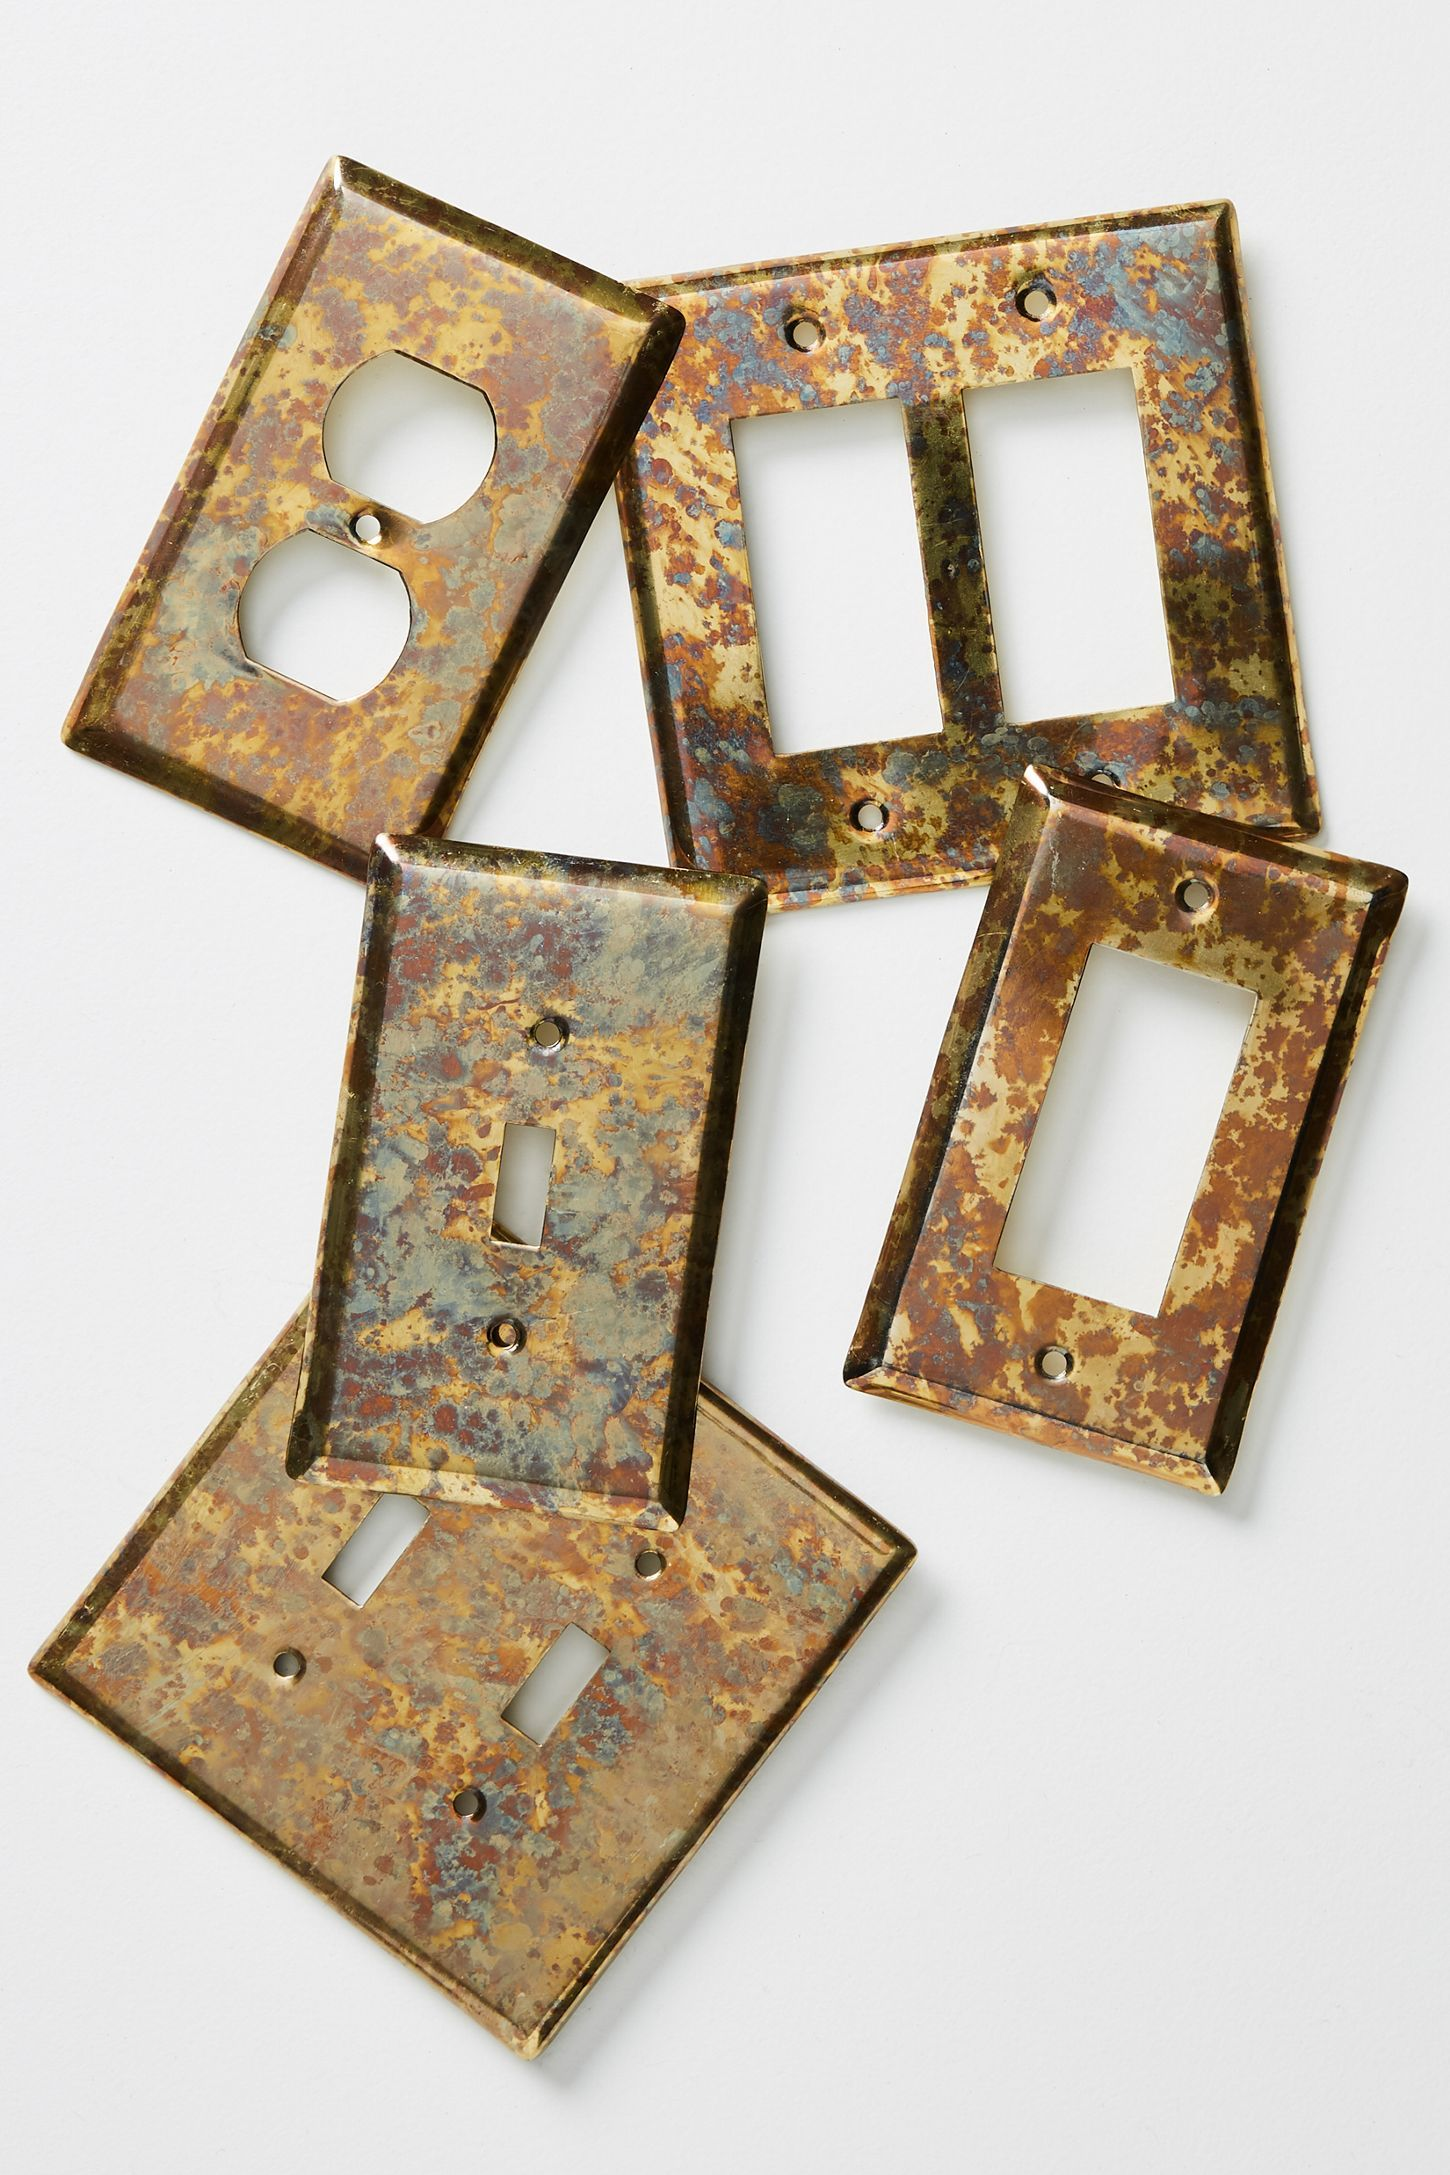 Essex Switch Plate Light Switch Covers Diy Switch Plates Light Switch Covers